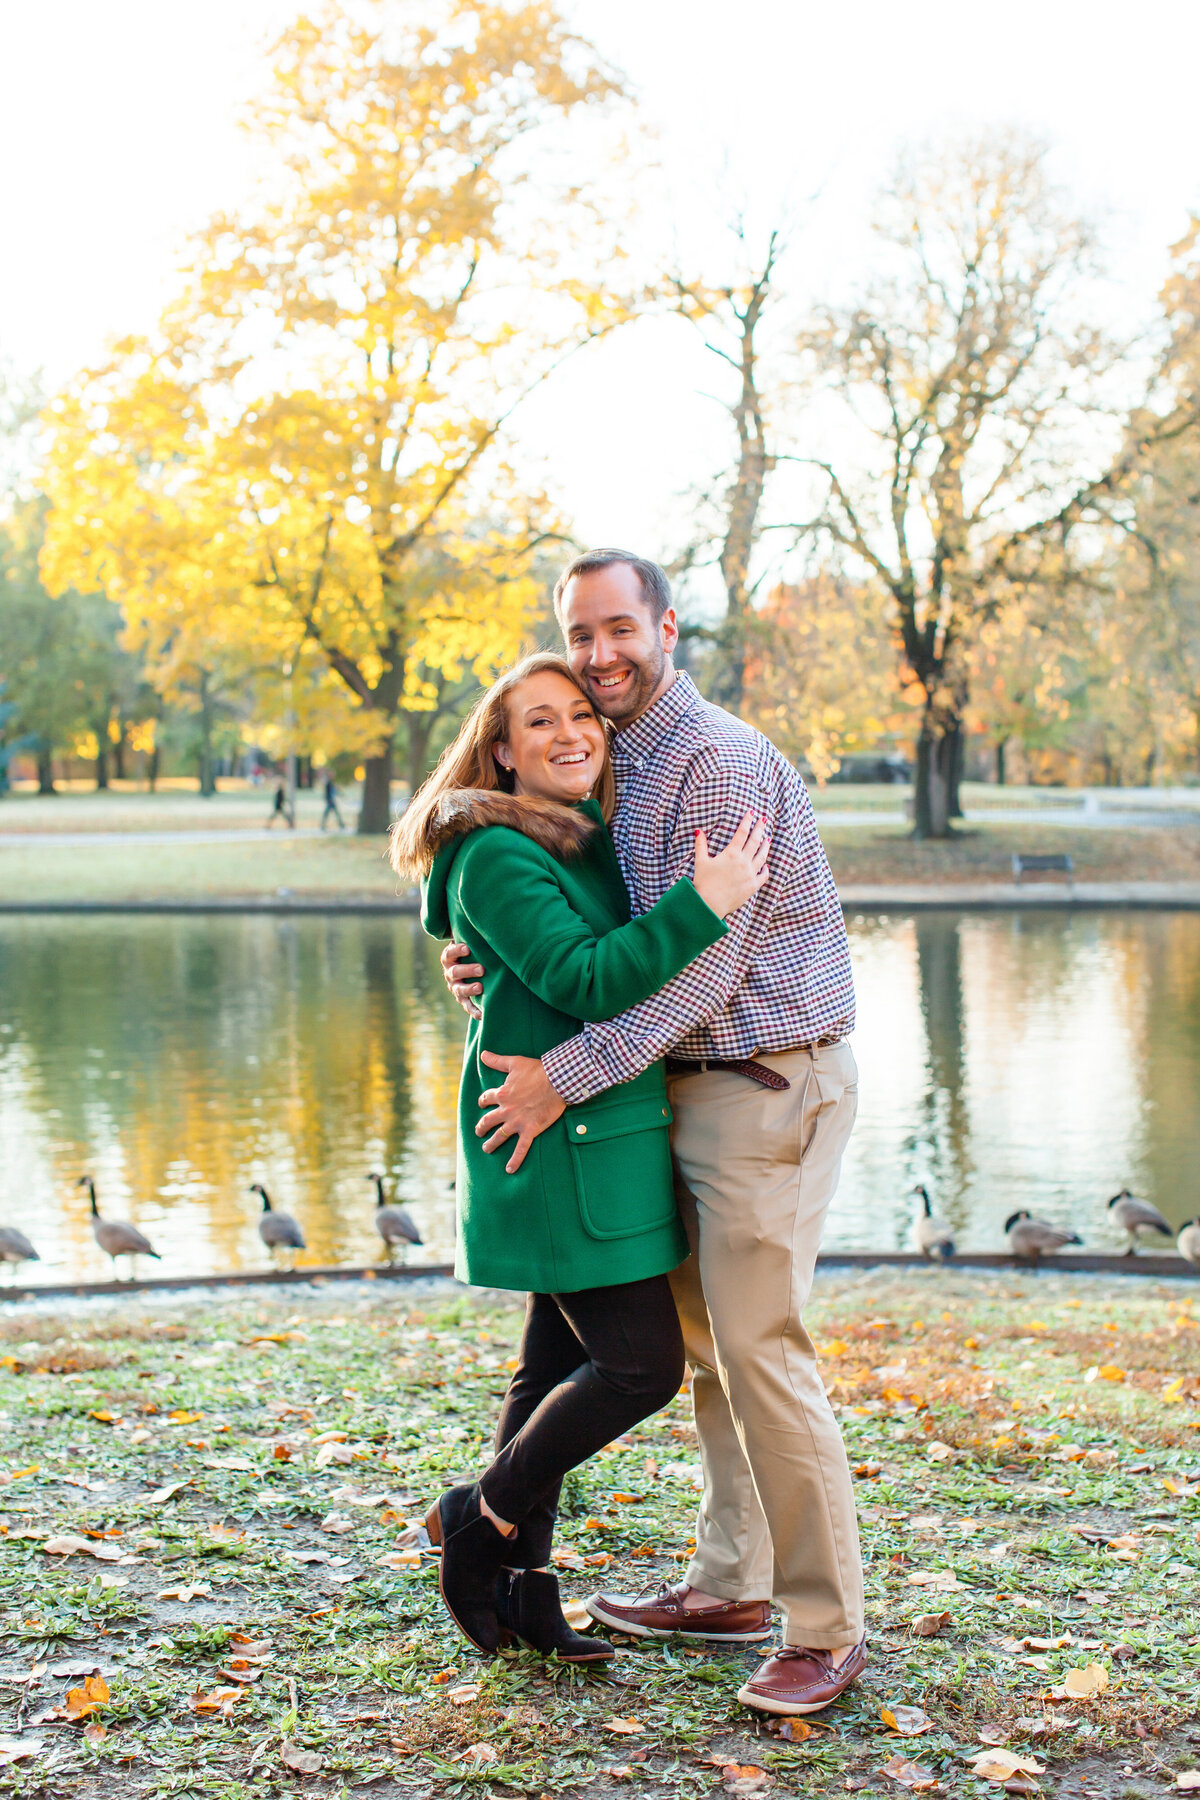 Winter Engagement  Session with green coat  couple laughing  at Lafayette Park in St. Louis by Amy Britton Photography Photographer in St. Louis